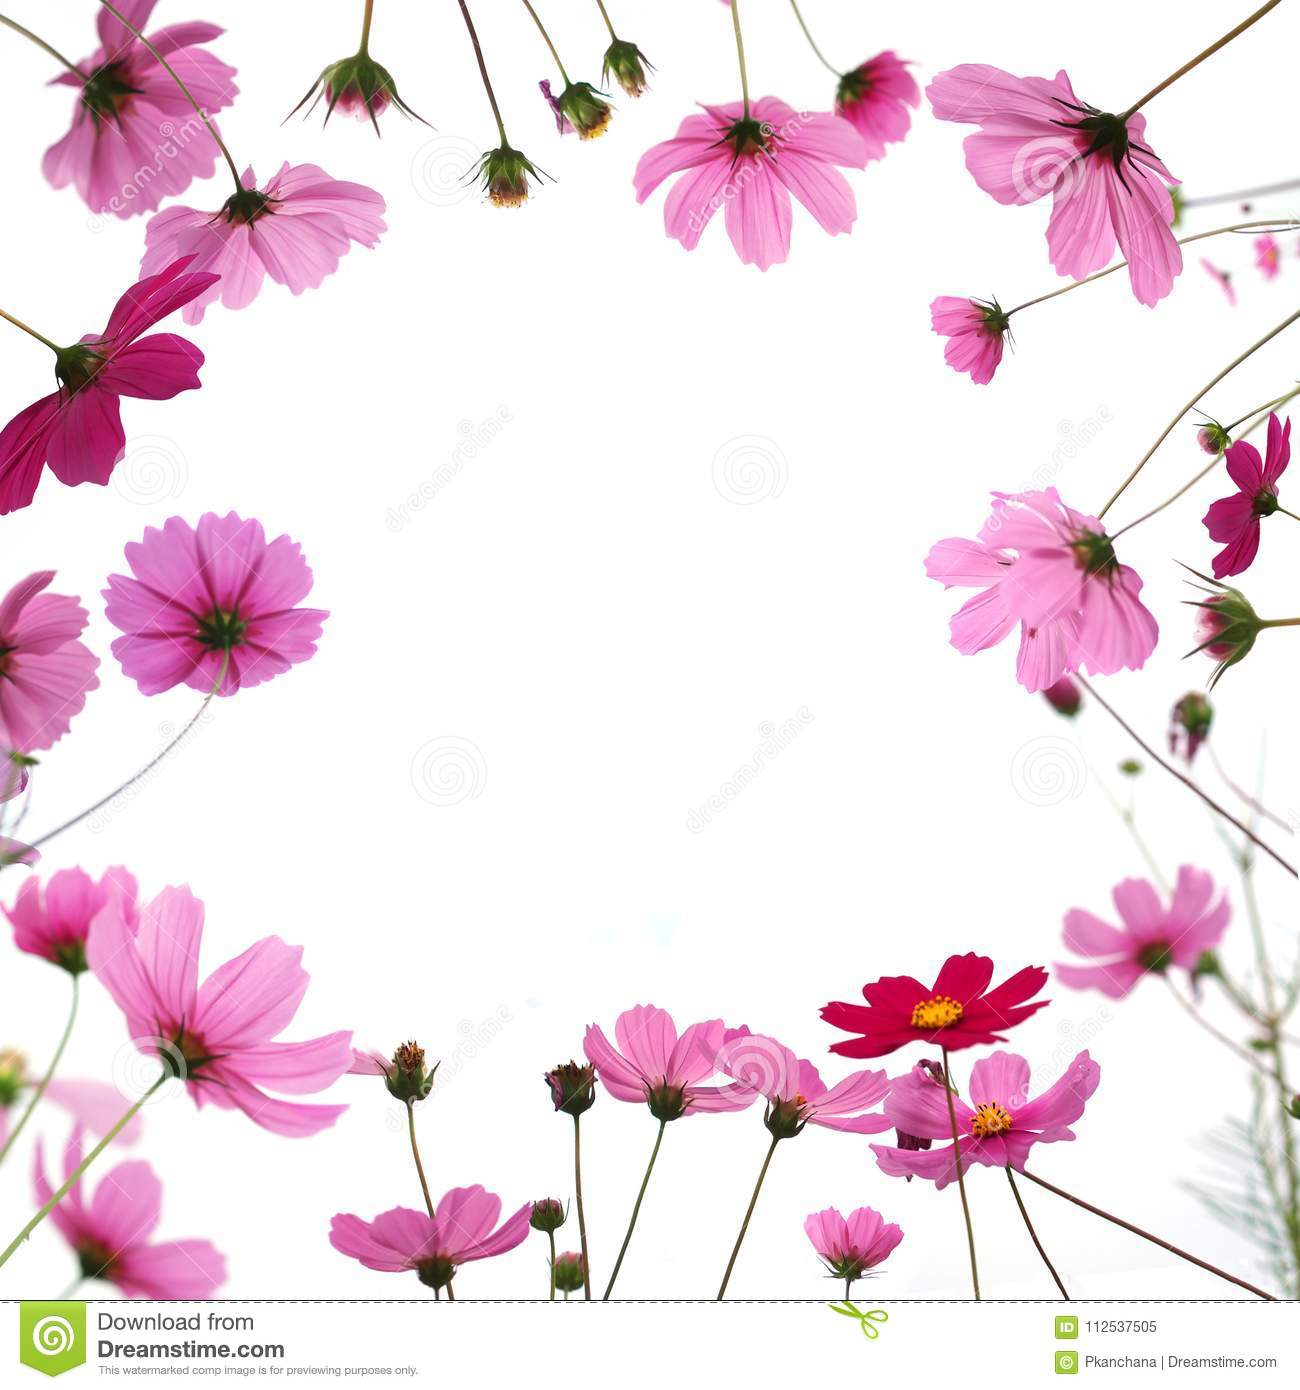 Pink Cosmos Flower In The Meadow Isolated On White Background Stock Image Image Of Love Floral 112537505